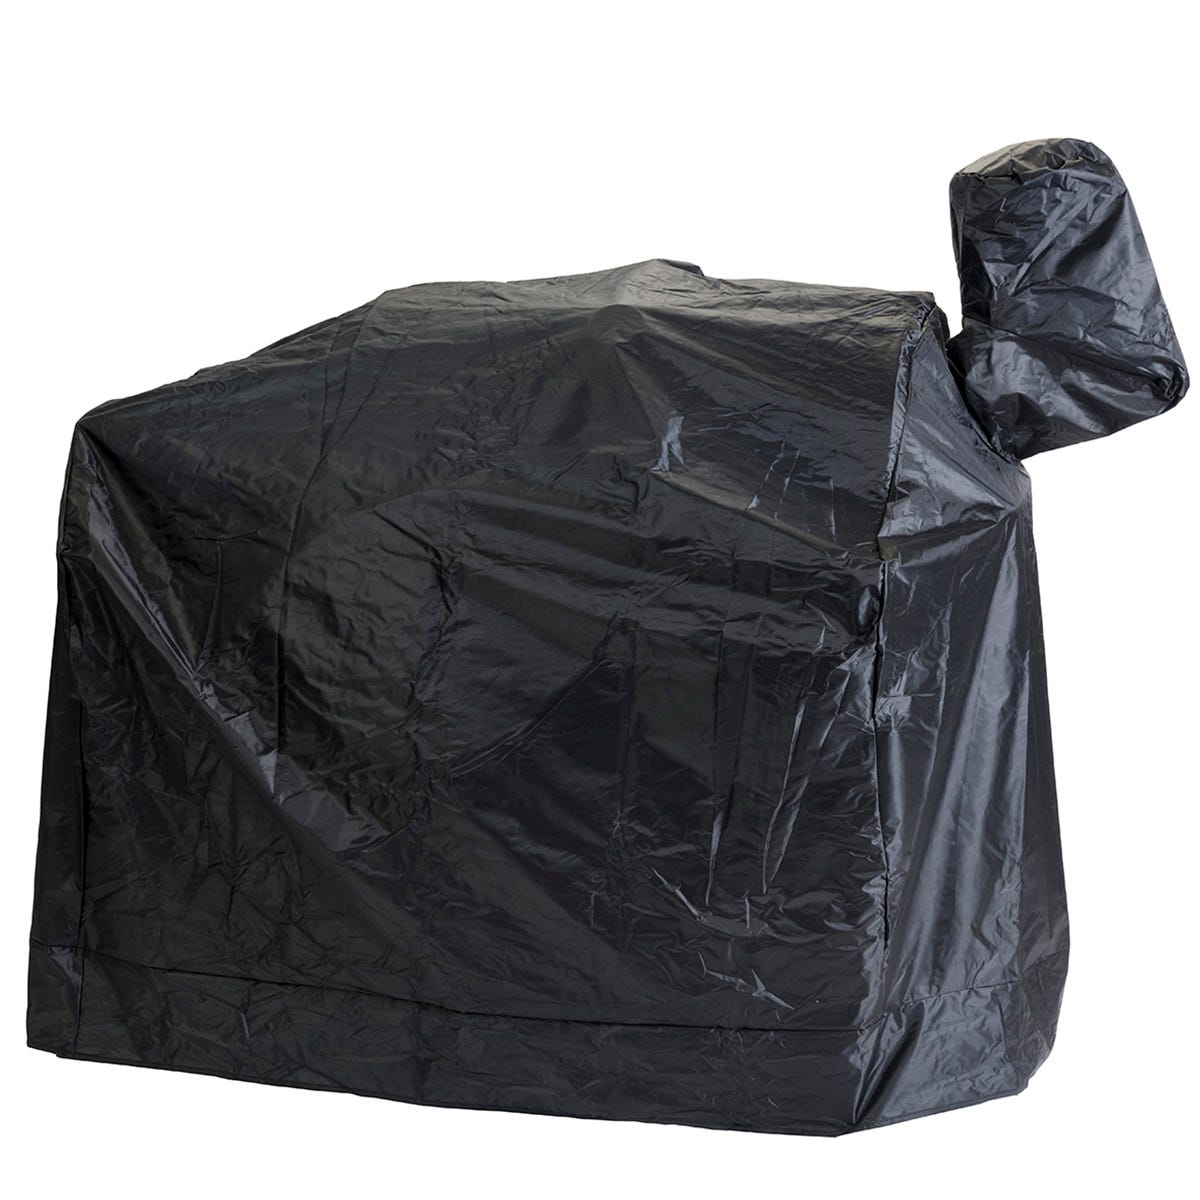 Lifestyle Appliances Cover for Lifestyle Big Horn Smoker BBQ